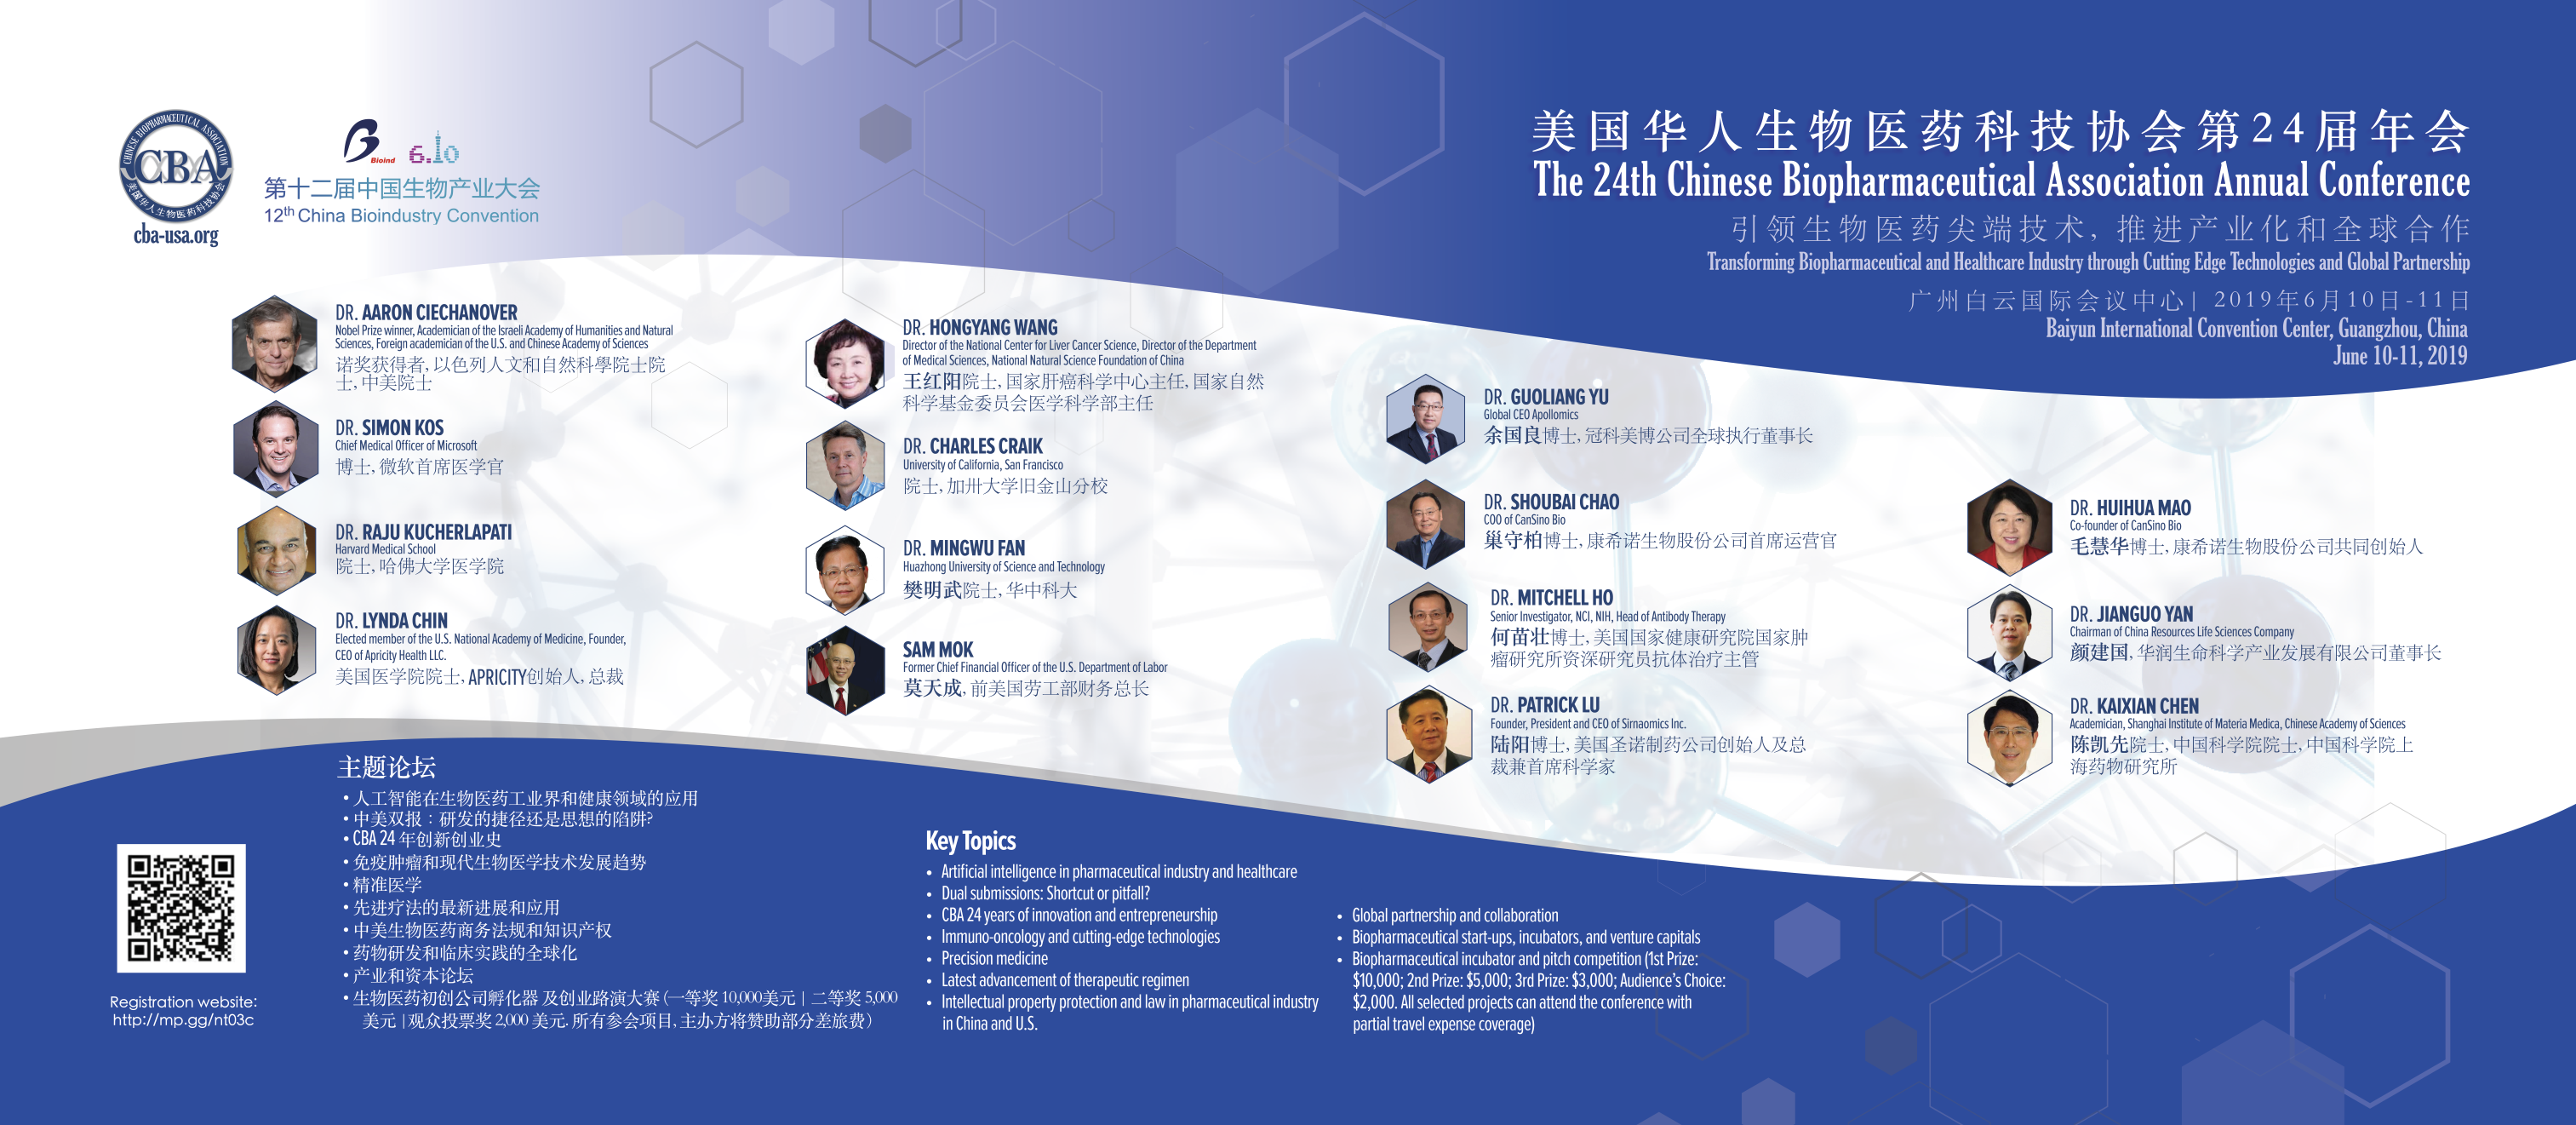 2019 CBA Annual Conference | Chinese Biopharmaceutical